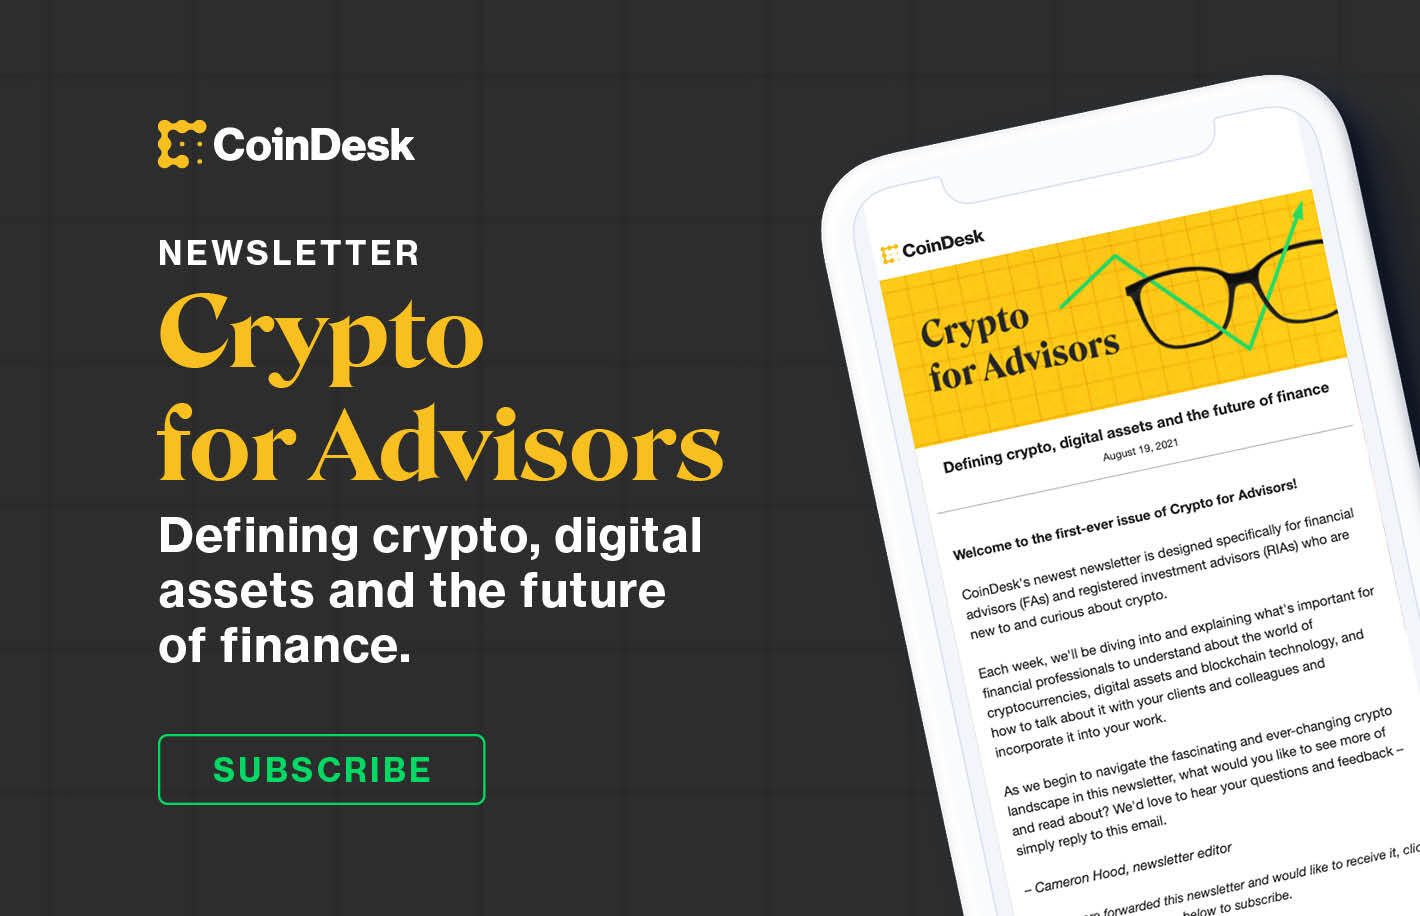 Introducing Crypto for Advisors, a Newsletter for Financial Planners